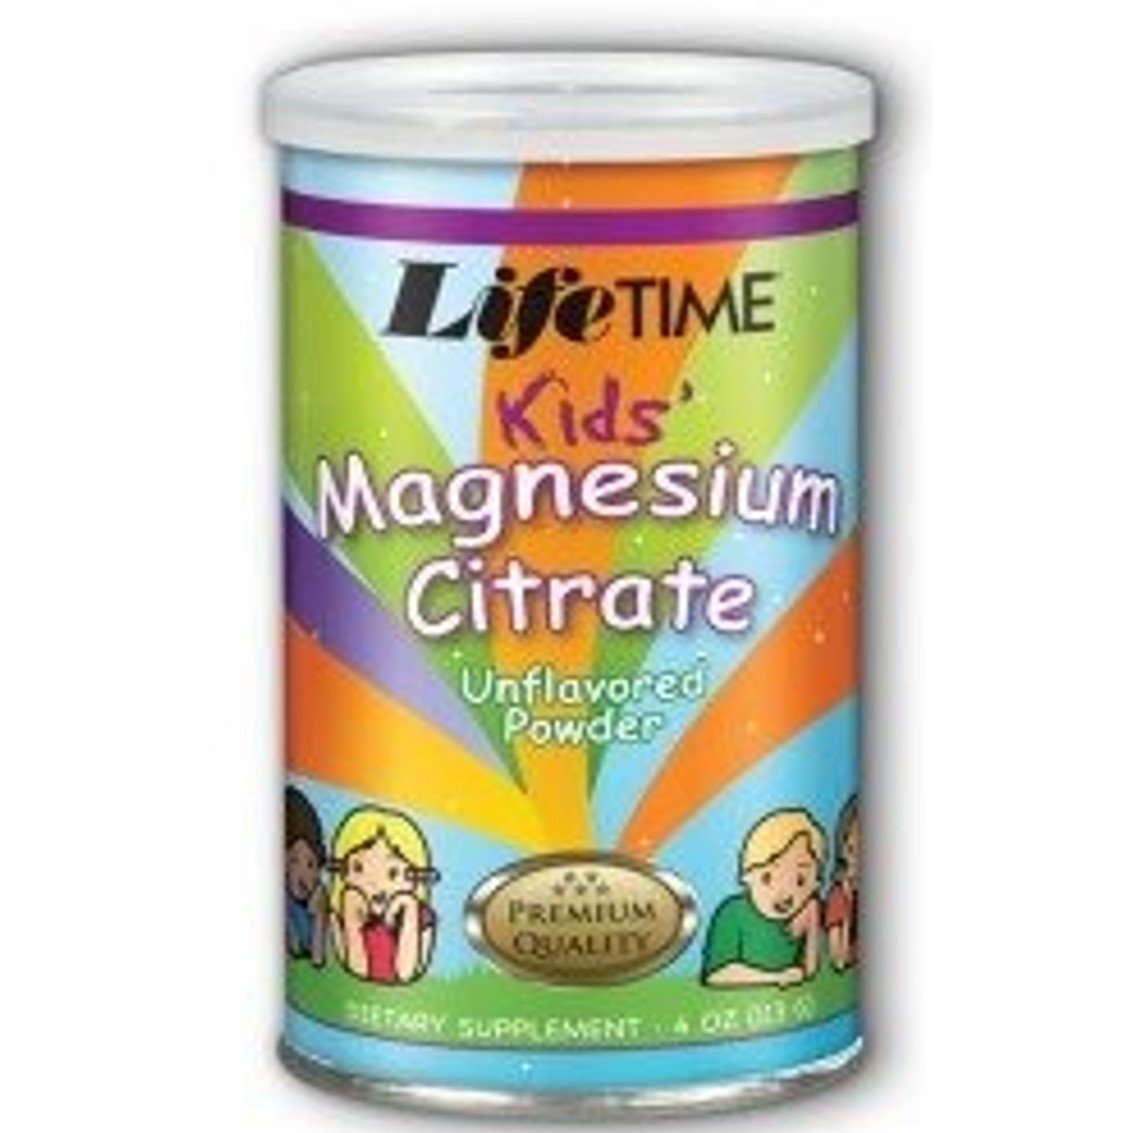 Lifetime Kids' Magnesium Citrate - Unflavoured powder, 113g